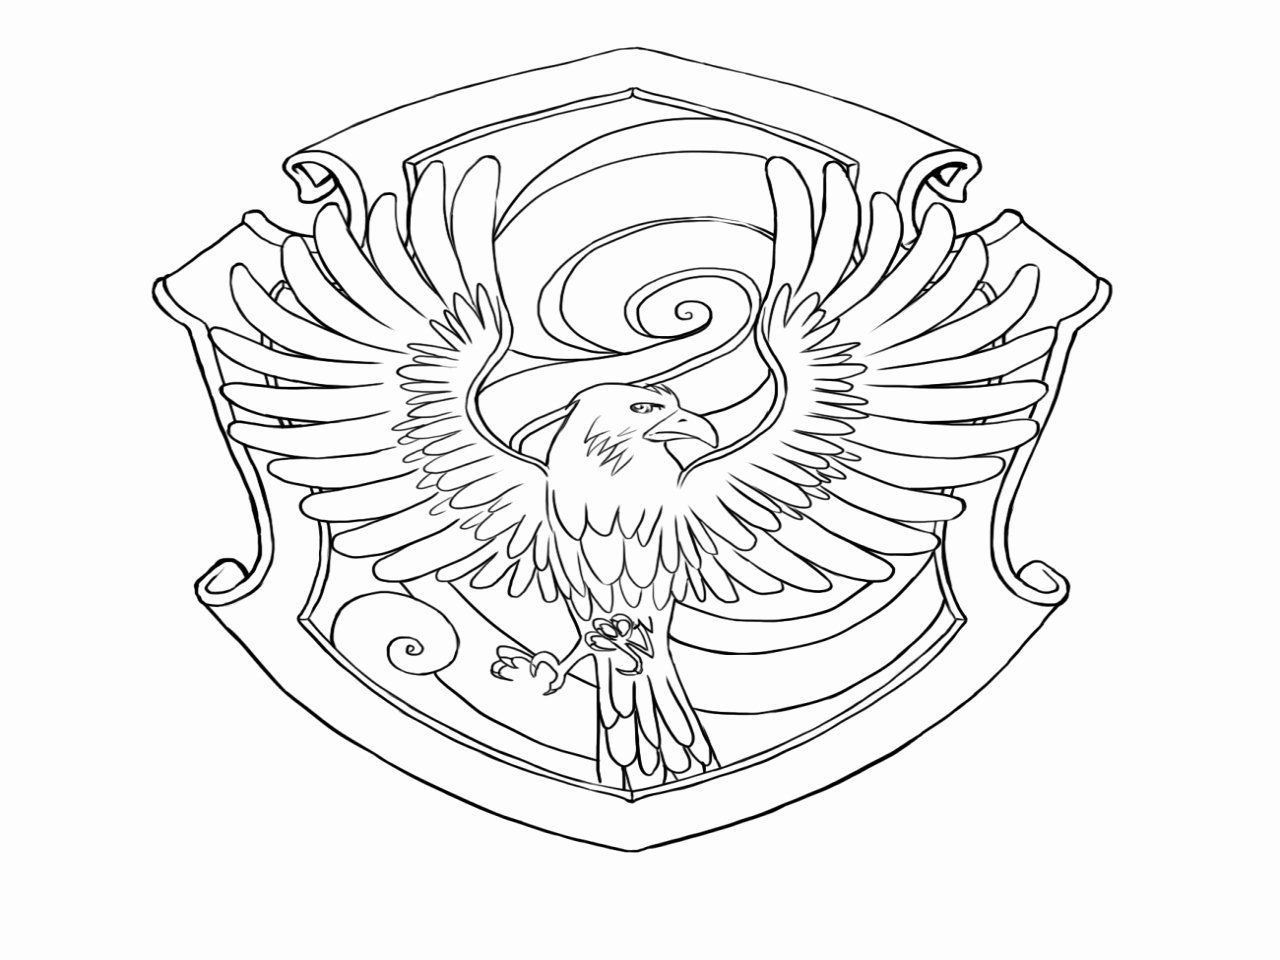 Harry Potter Coloring Pages 114 Harry Potter Colors Harry Potter Coloring Pages Harry Potter Coloring Book